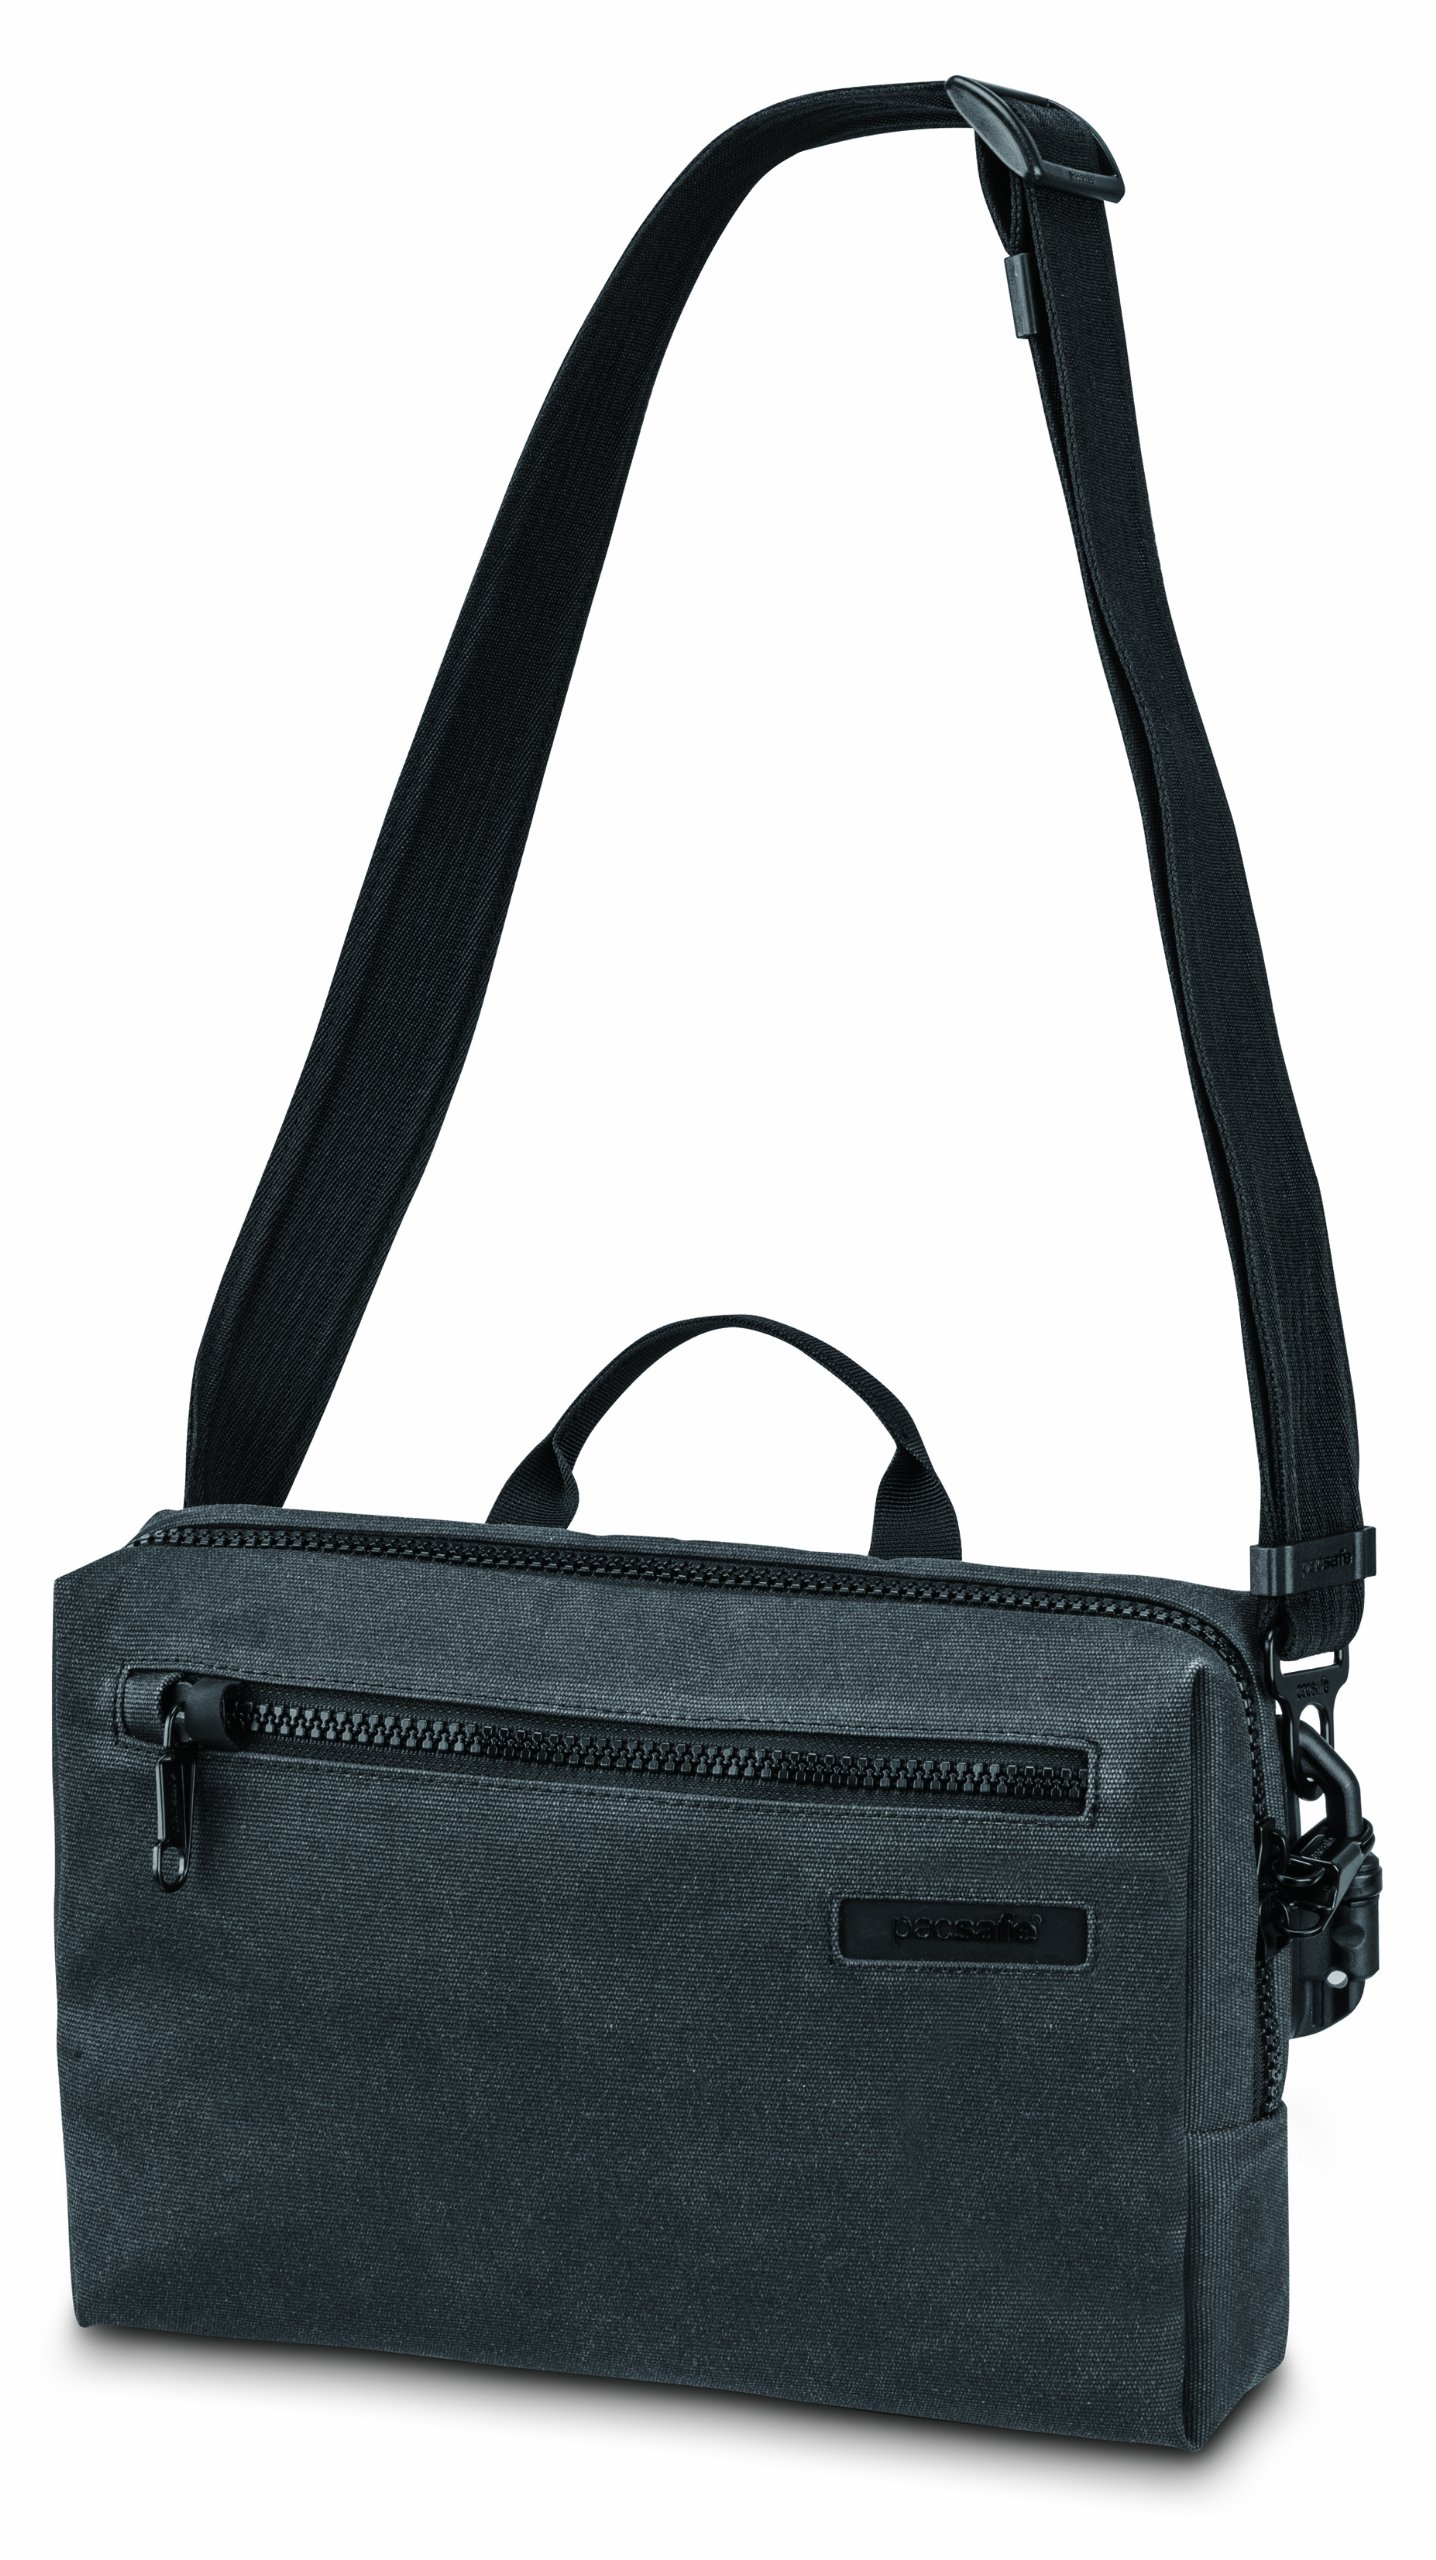 Pacsafe Intasafe Z100 Anti-Theft Cross-Body Pack, Charcoal